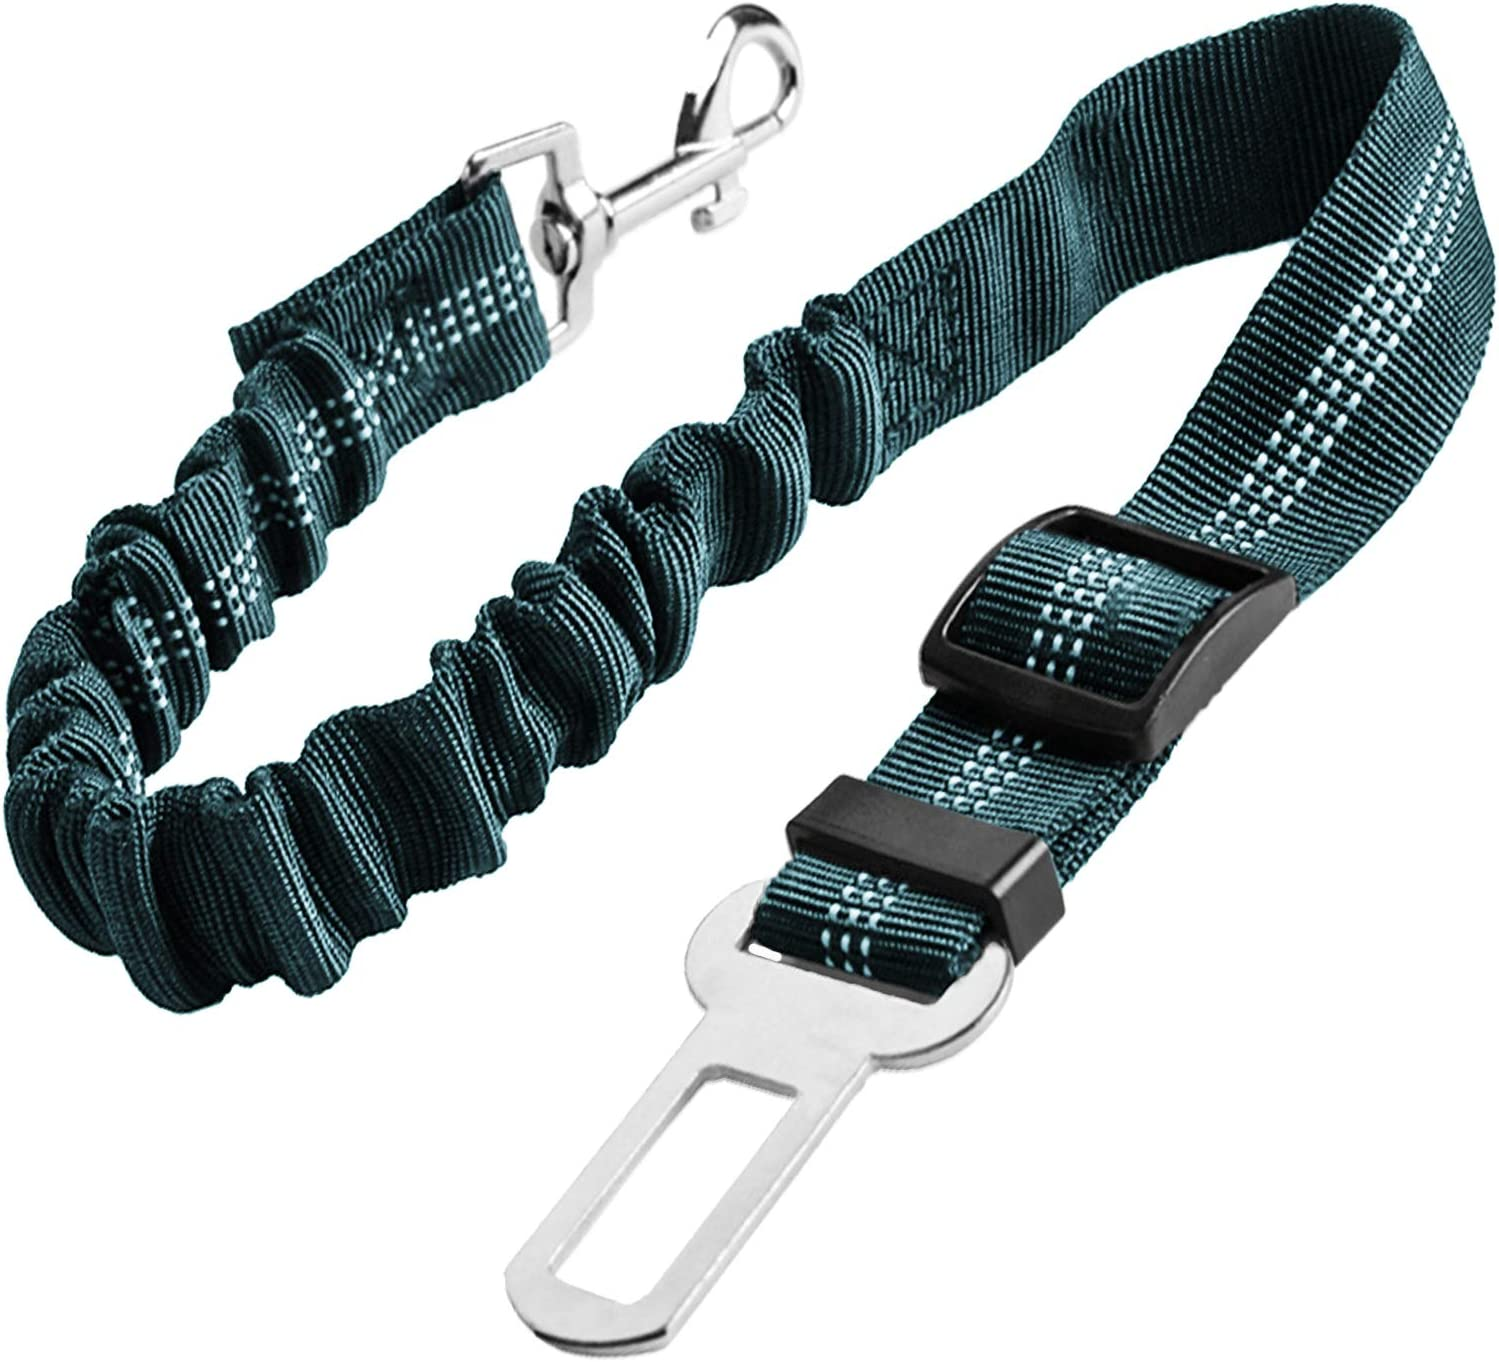 Perfect for Travel and Daily Use with Elastic Nylon Buffer Grey Durable Reflective Pet Vehicle Safety Belt Adjustable Pet Car Harness for Small Medium Large Dogs and Cats Upgraded Dog Seat Belt